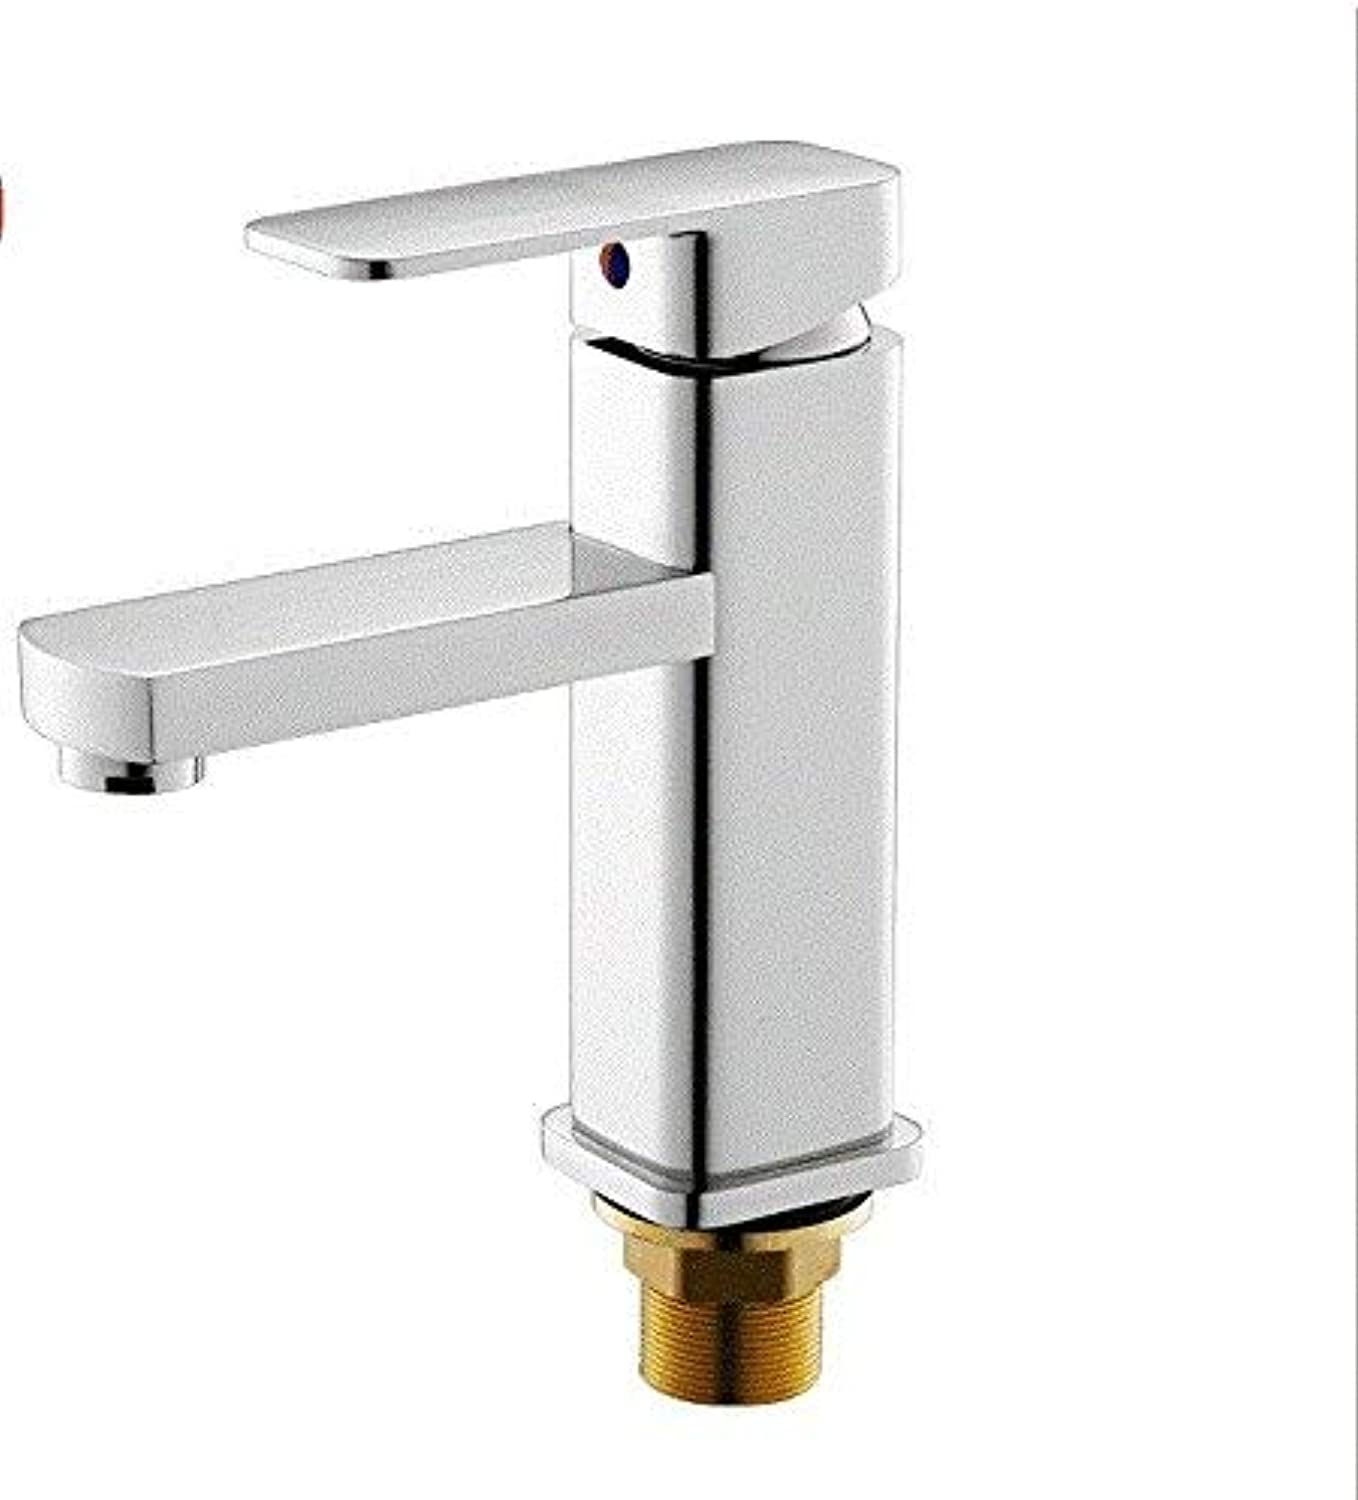 MARCU HOME Sink Mixer Tap Bathroom Kitchen Basin Water Tap Leakproof Save Water Basin Hot And Cold Water Bathroom Single Handle Single Hole A